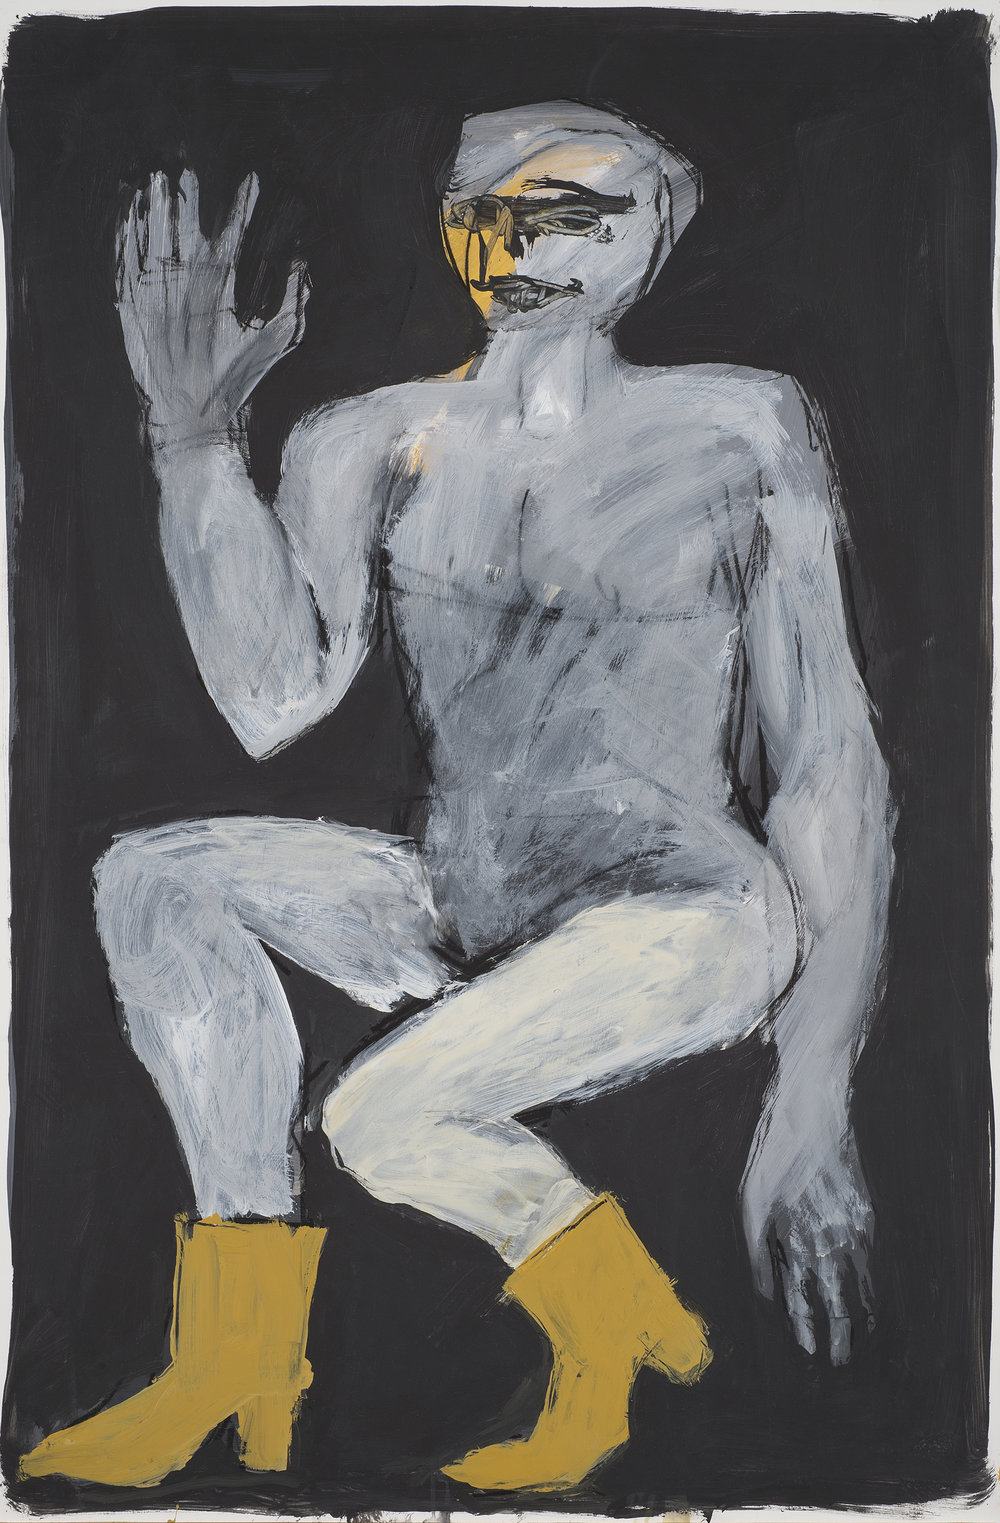 Untitled, 1987. Acrylic on paper, 35 x 23 in (88.9 x 58.4 cm.)